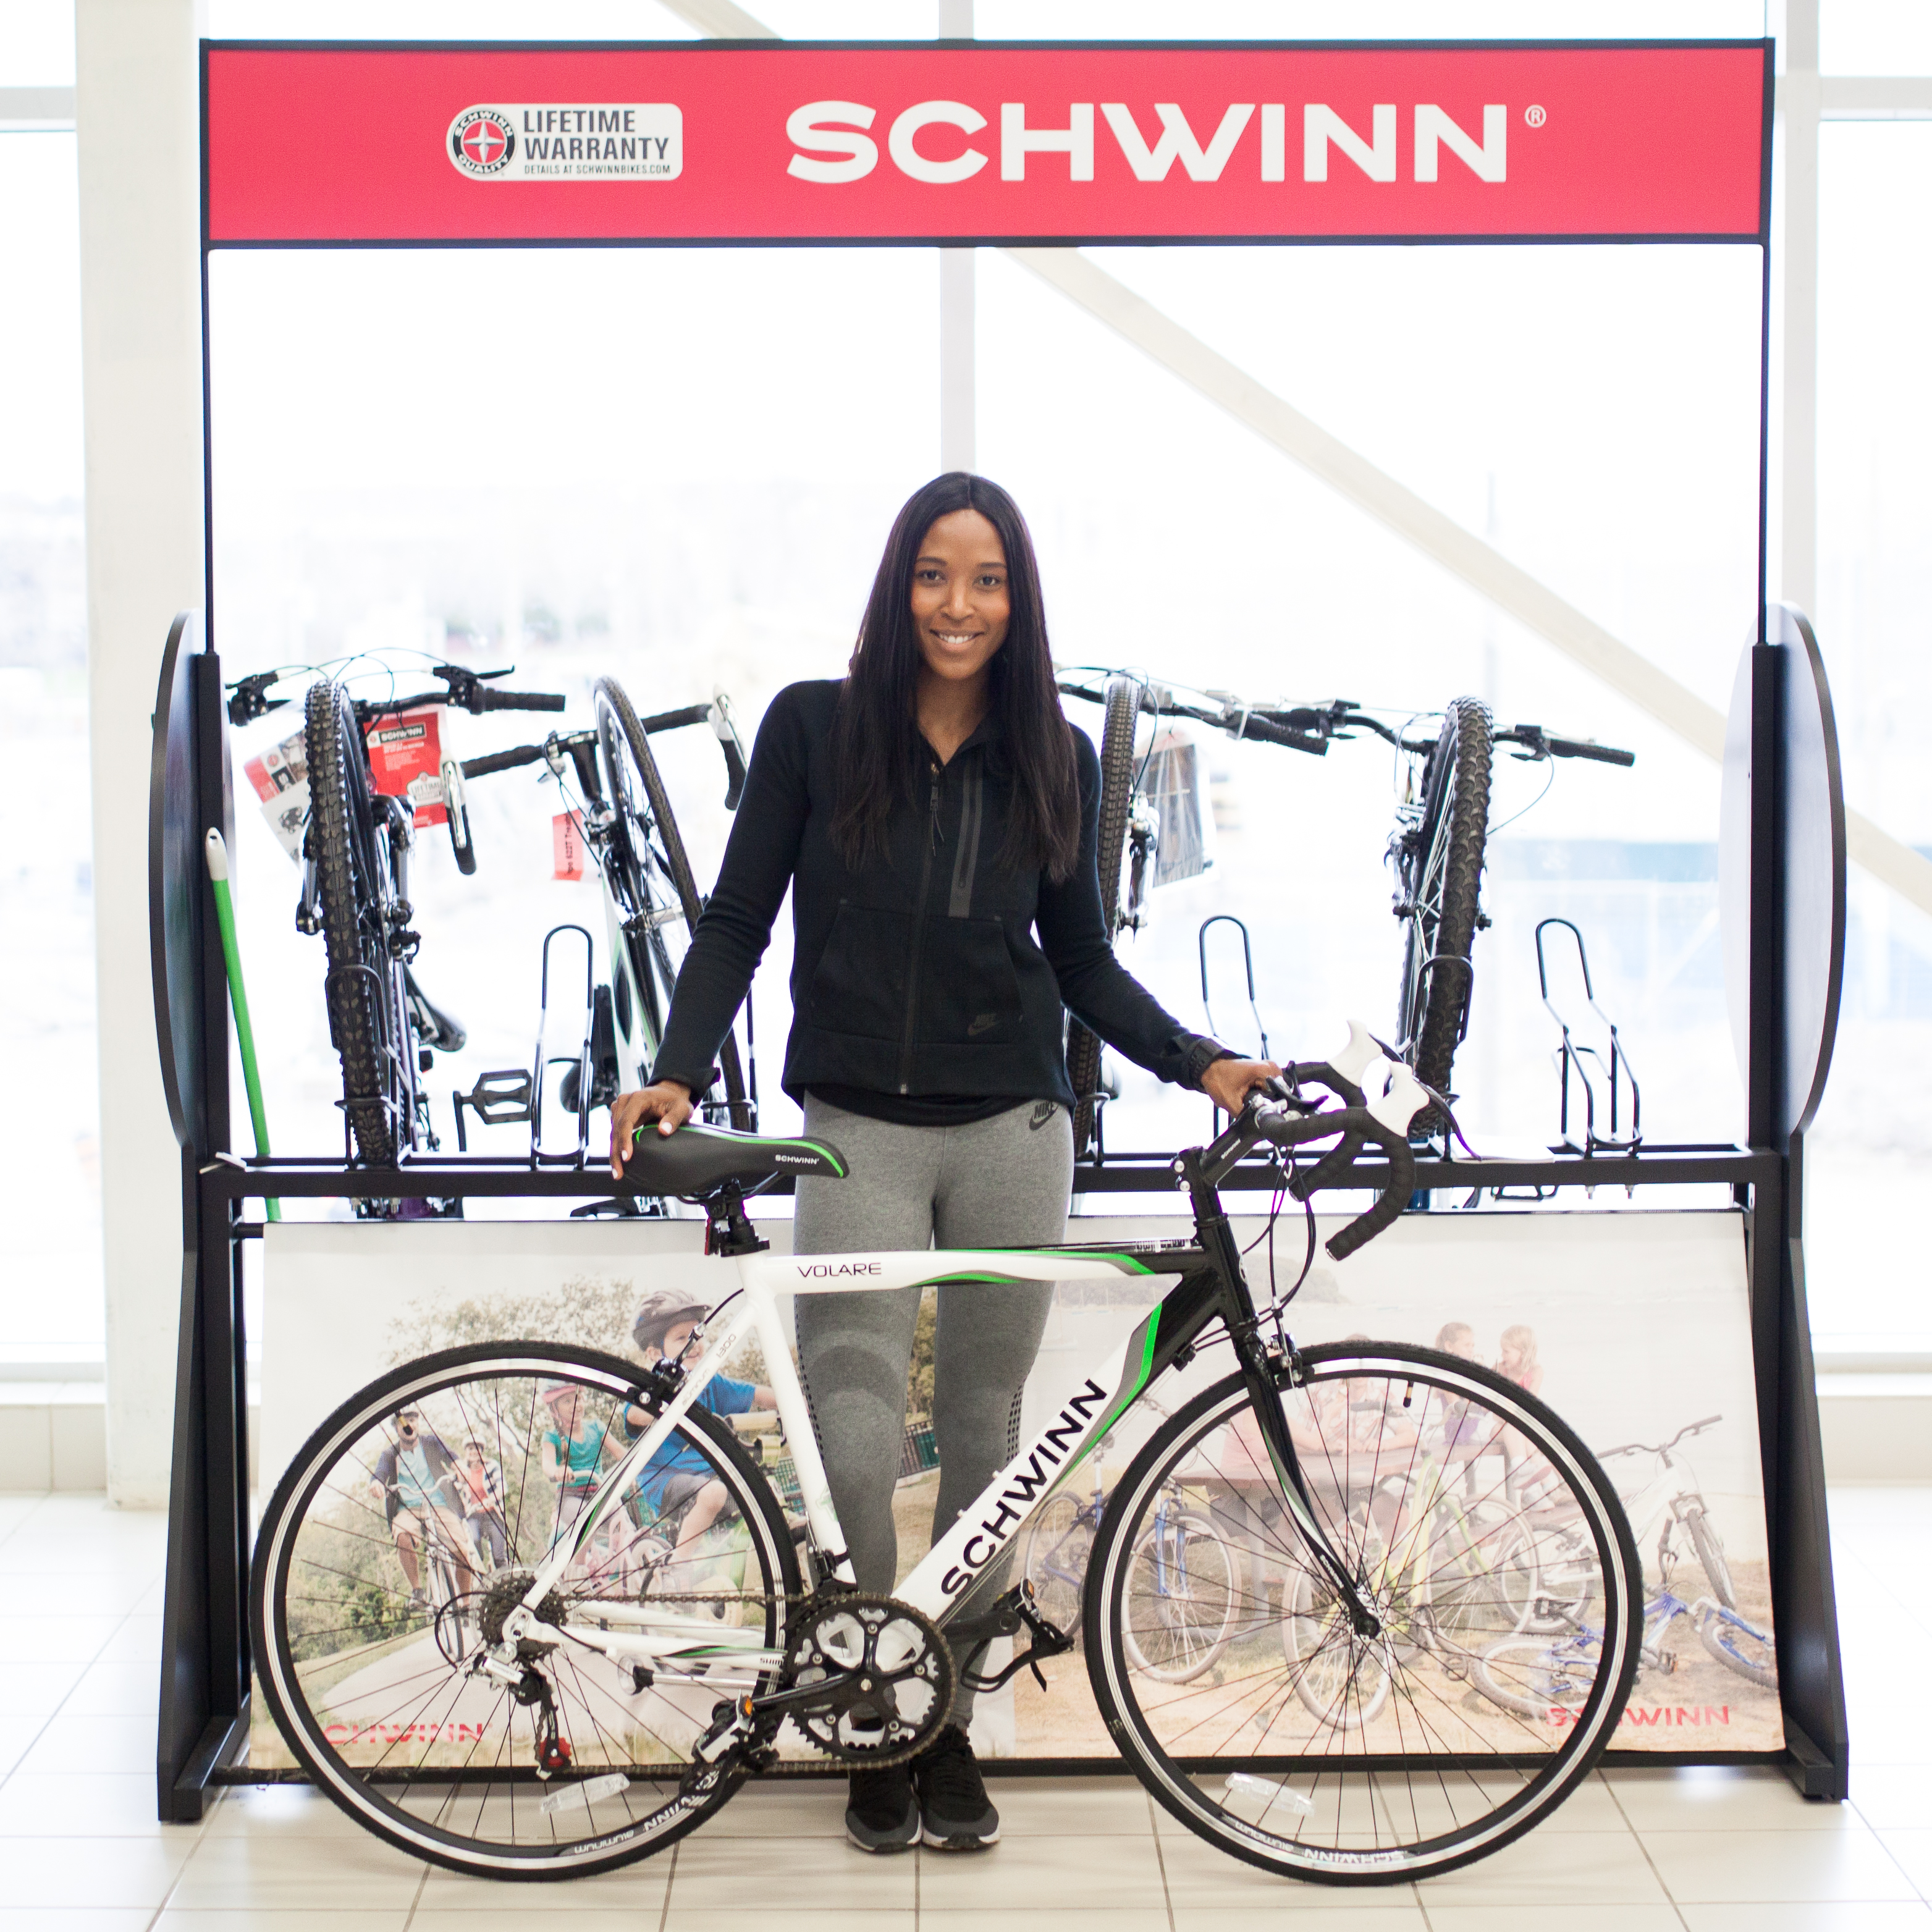 Ride With Schwinn